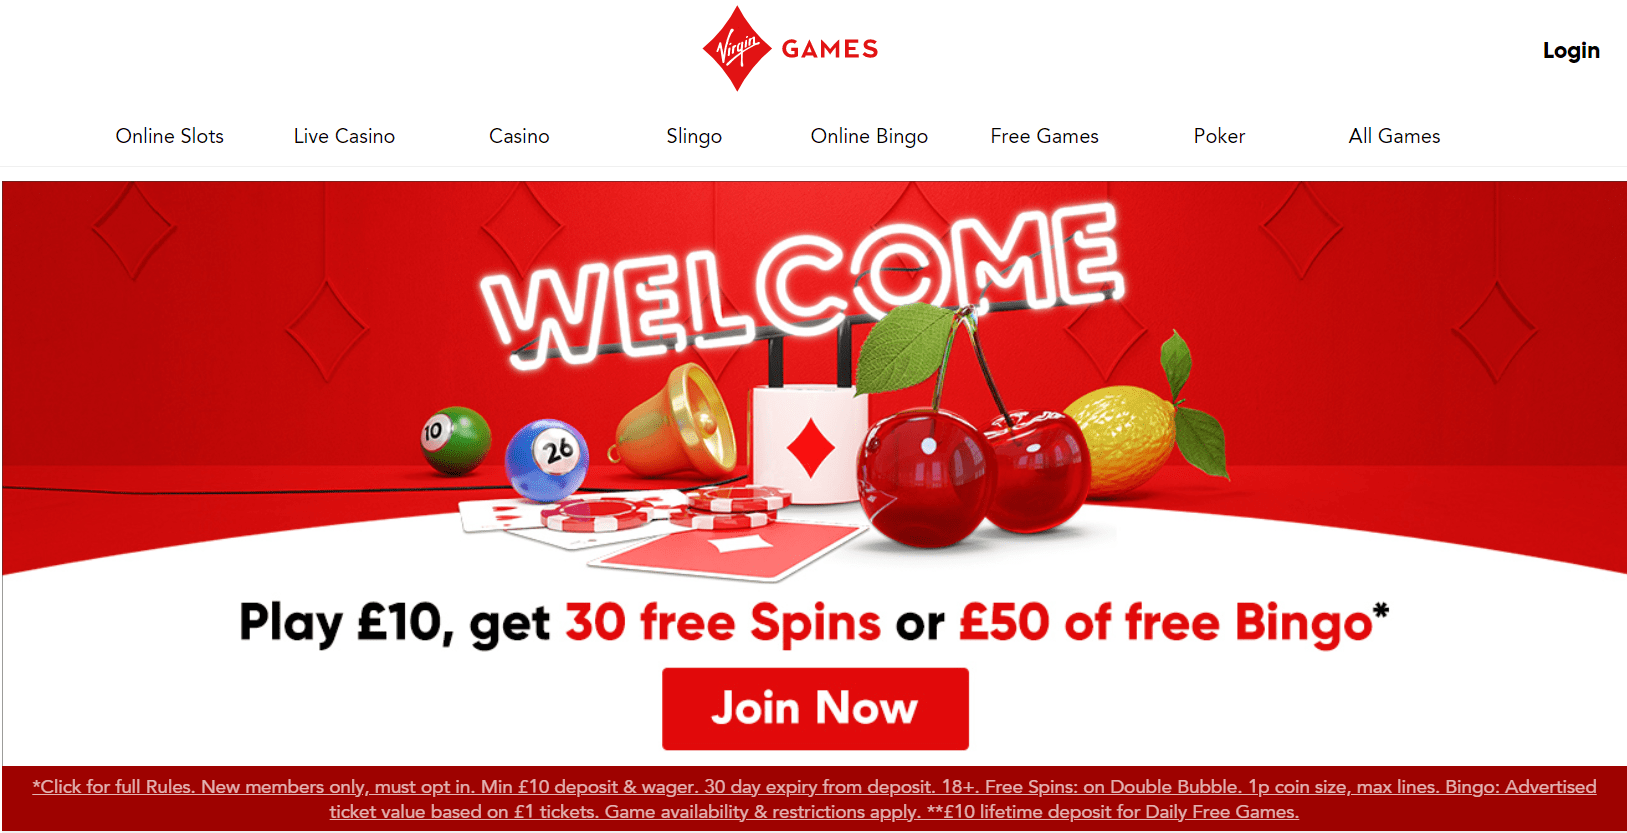 virgin games bonuses